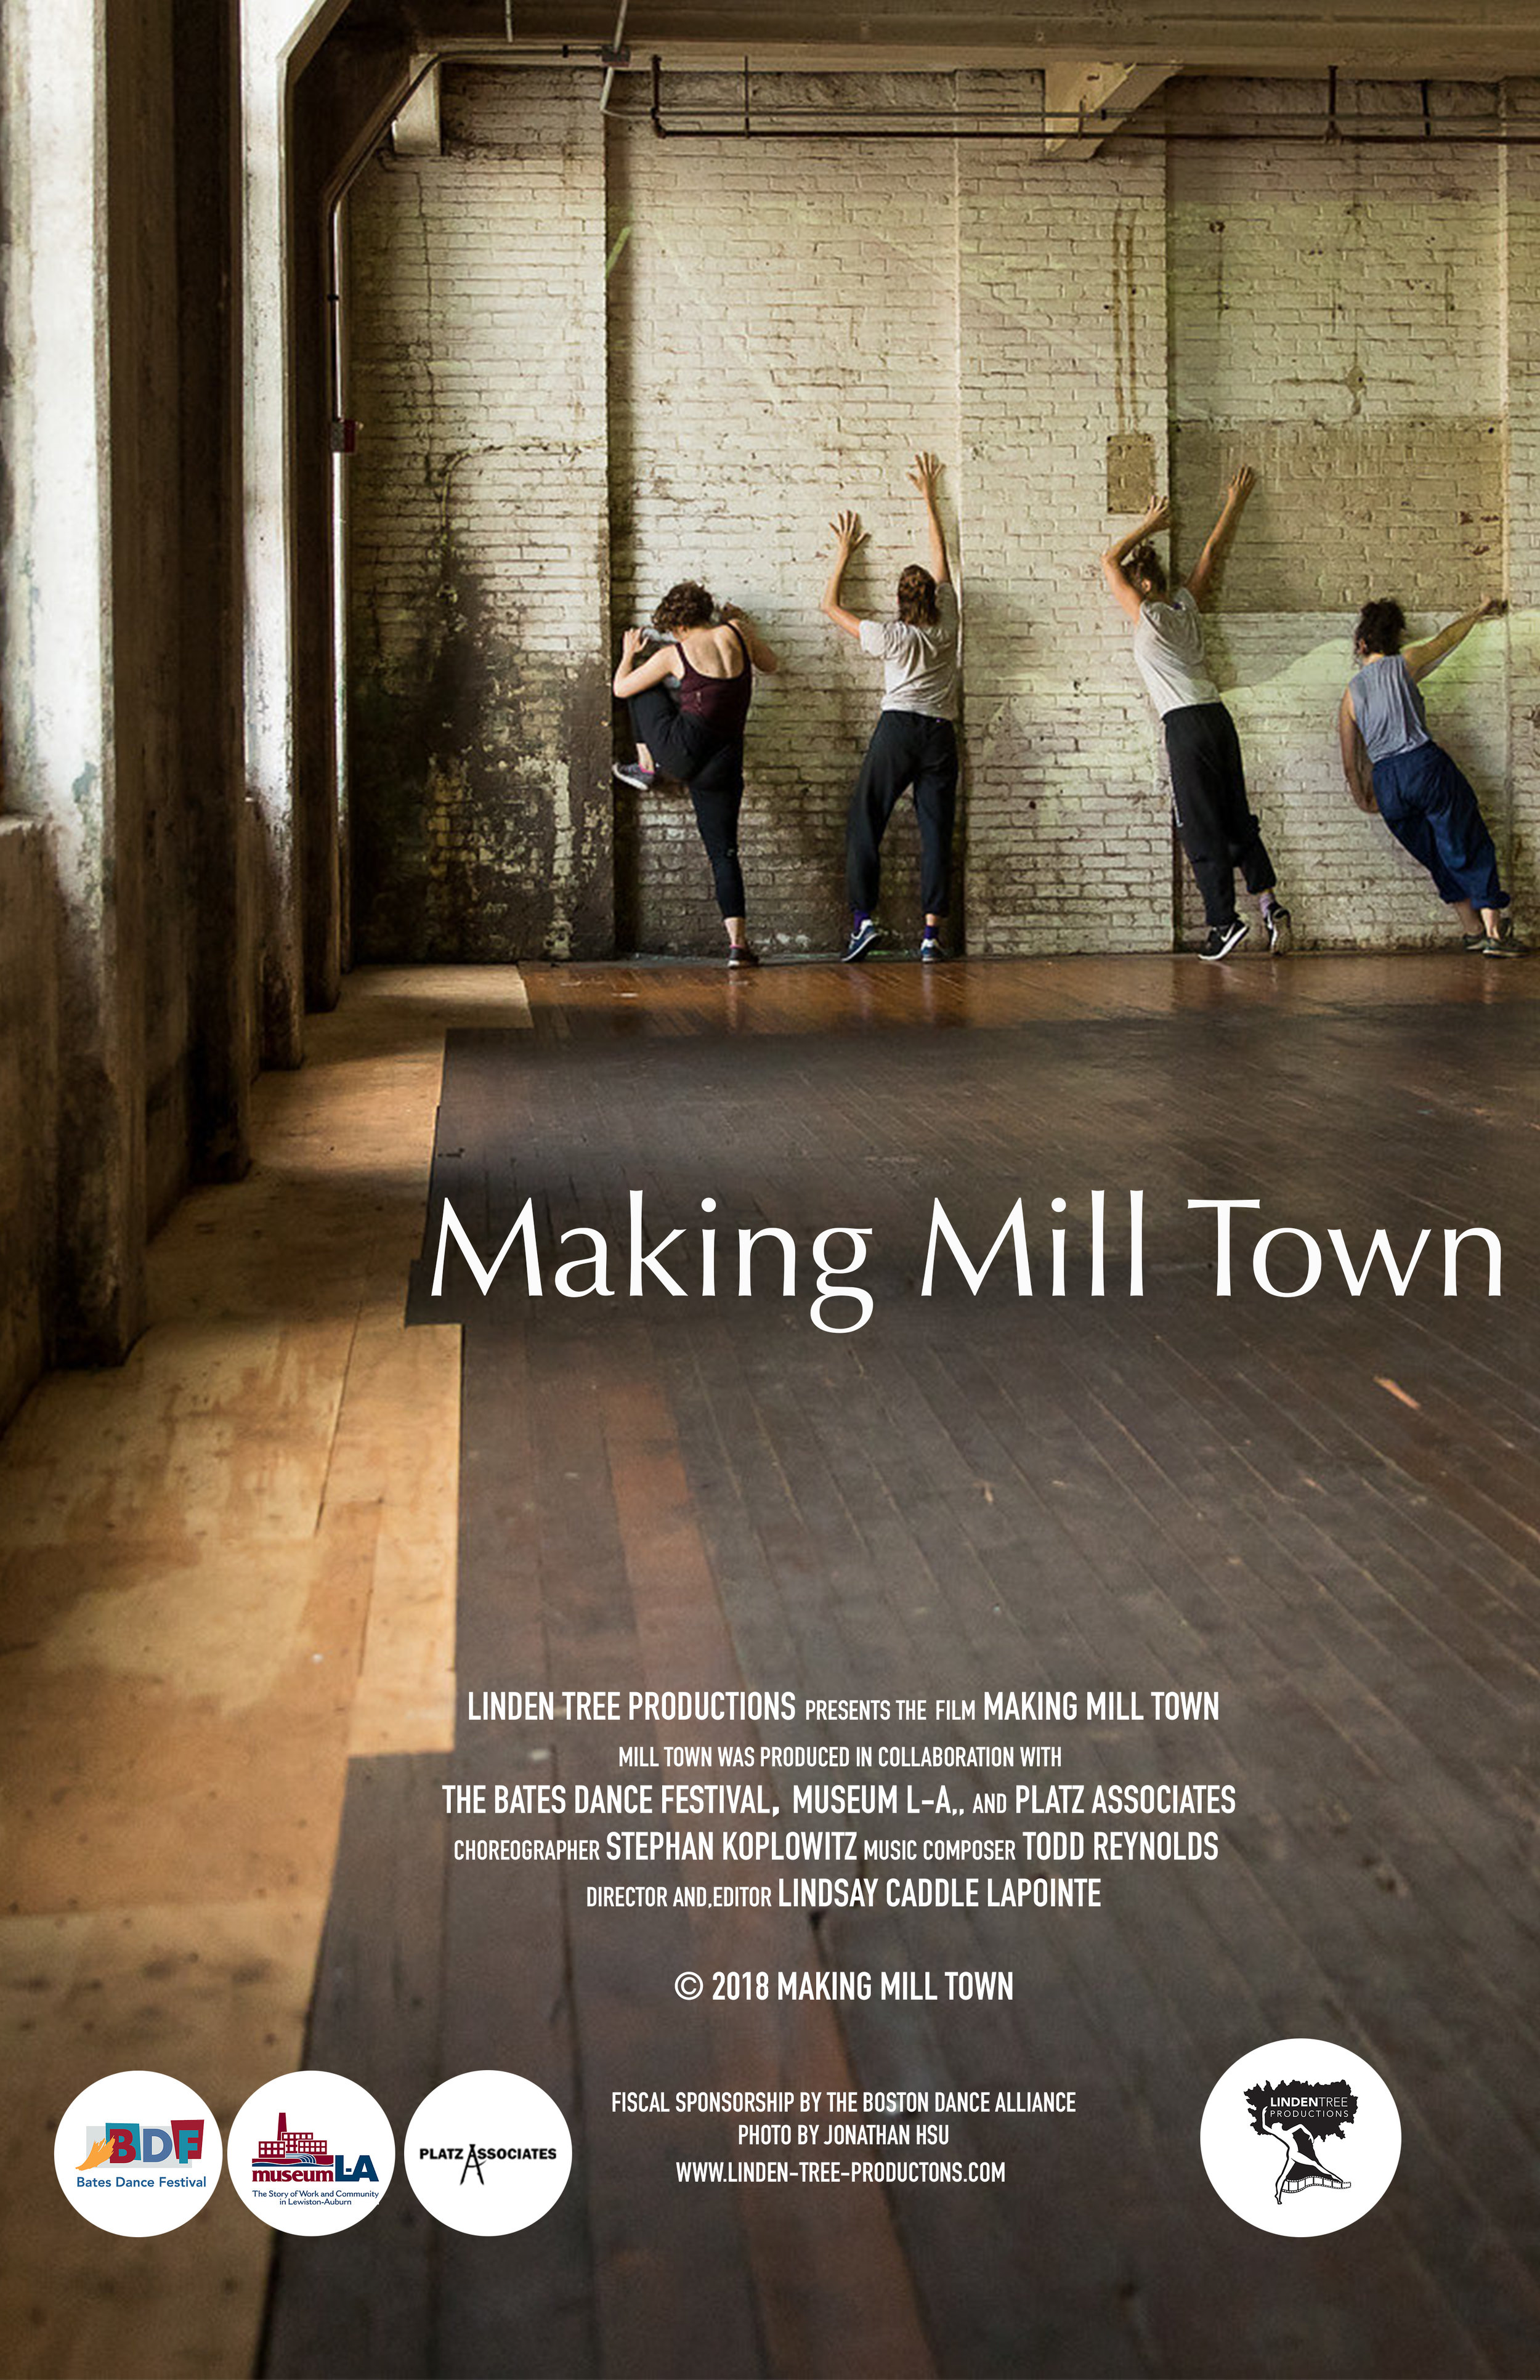 The Making Mill Town video documents the creation of Mill Town, an immersive multimedia performance installation that animates the history and culture of mill life the 19th century. Through a loose imagistic narrative referencing past, present and future, Mill Town conjures new possibilities for vacant mill buildings that once provided the Lewiston-Auburn communities their backbone and character. Making Mill Town serves as a lasting document of this powerful and ephemeral performance that re-animated the work and life of one mill community and inspired audiences with a highly imaginative, site-specific expression of the iconic spaces. -